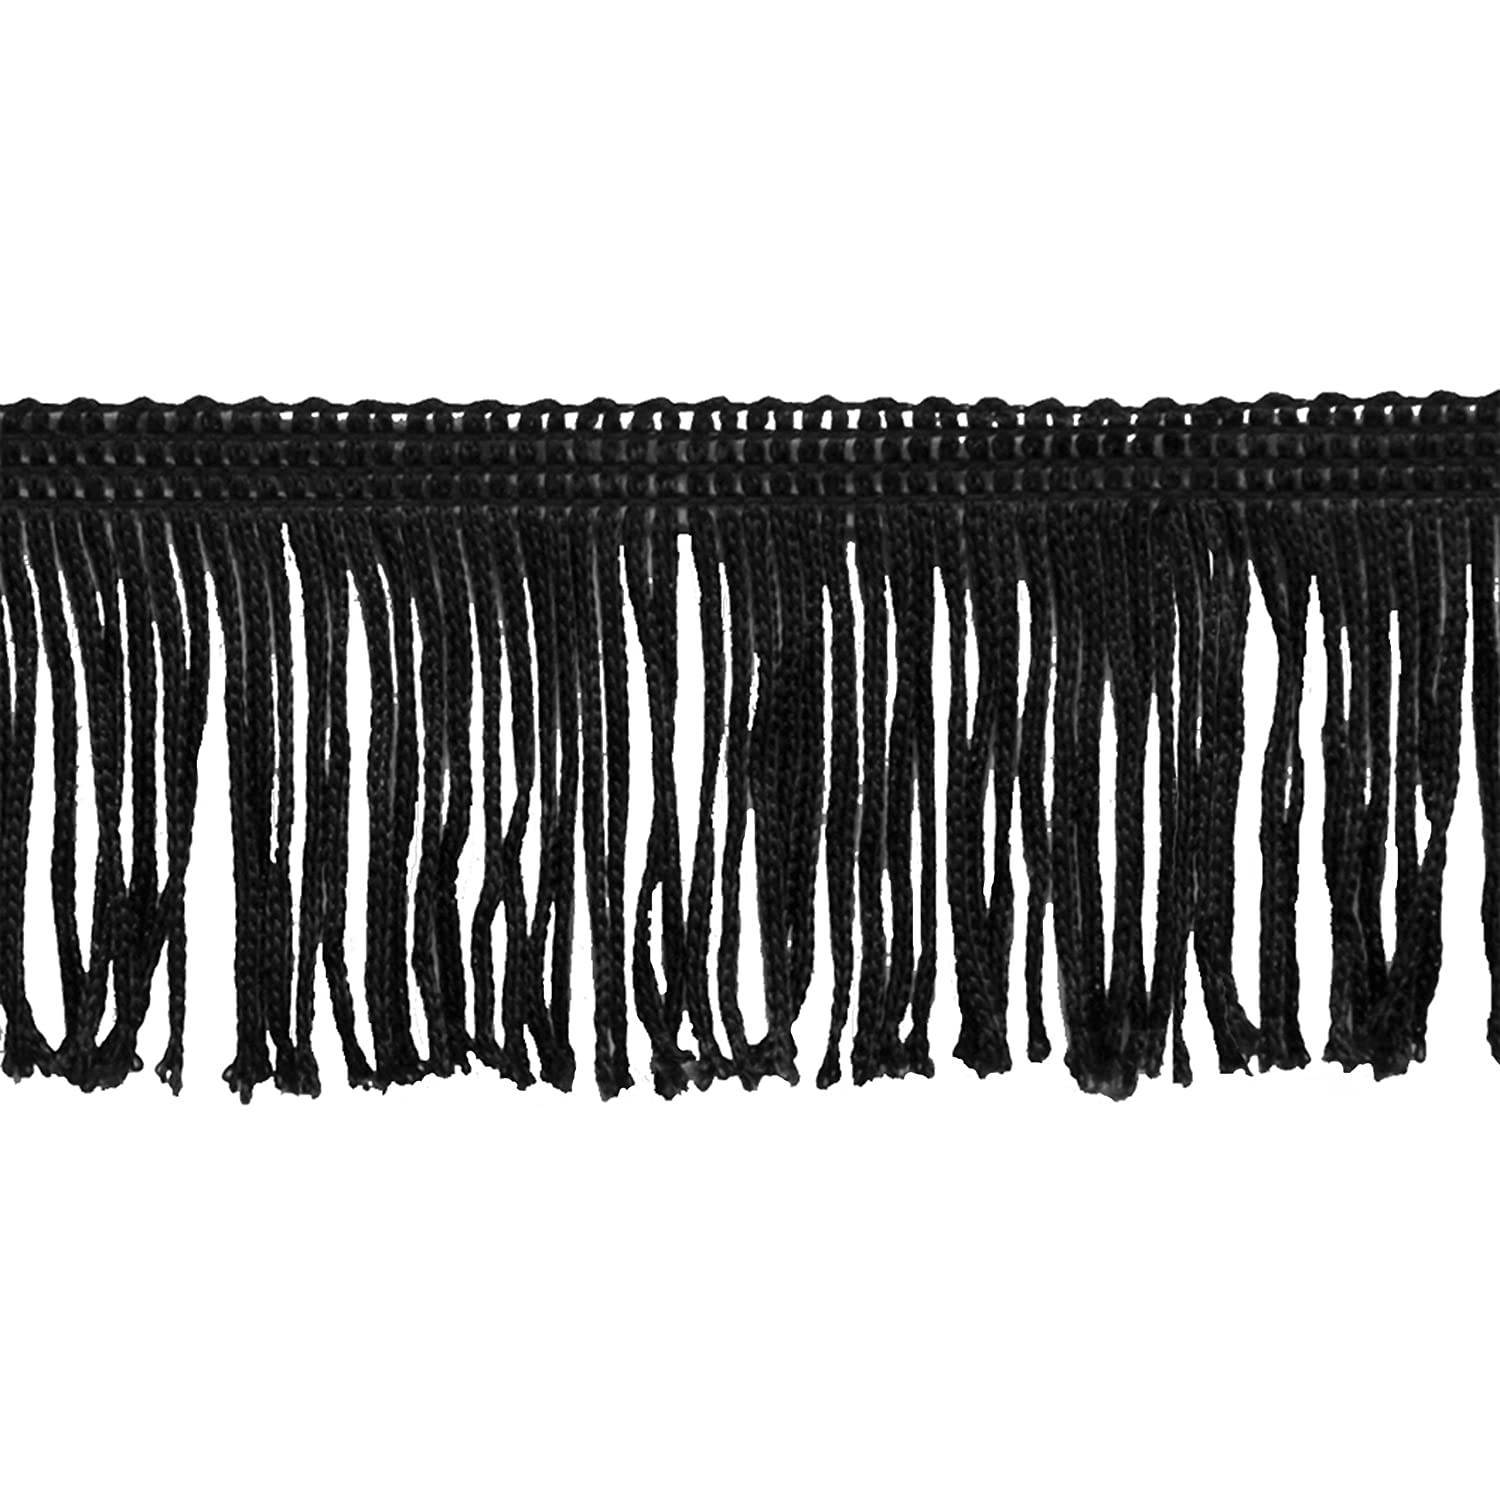 Chainette Fringe 10-Yard Polyester Fringe Rolls for Arts and Crafts, 2-Inch Long, Black Belagio Enterprises P-7043- 02 BLACK